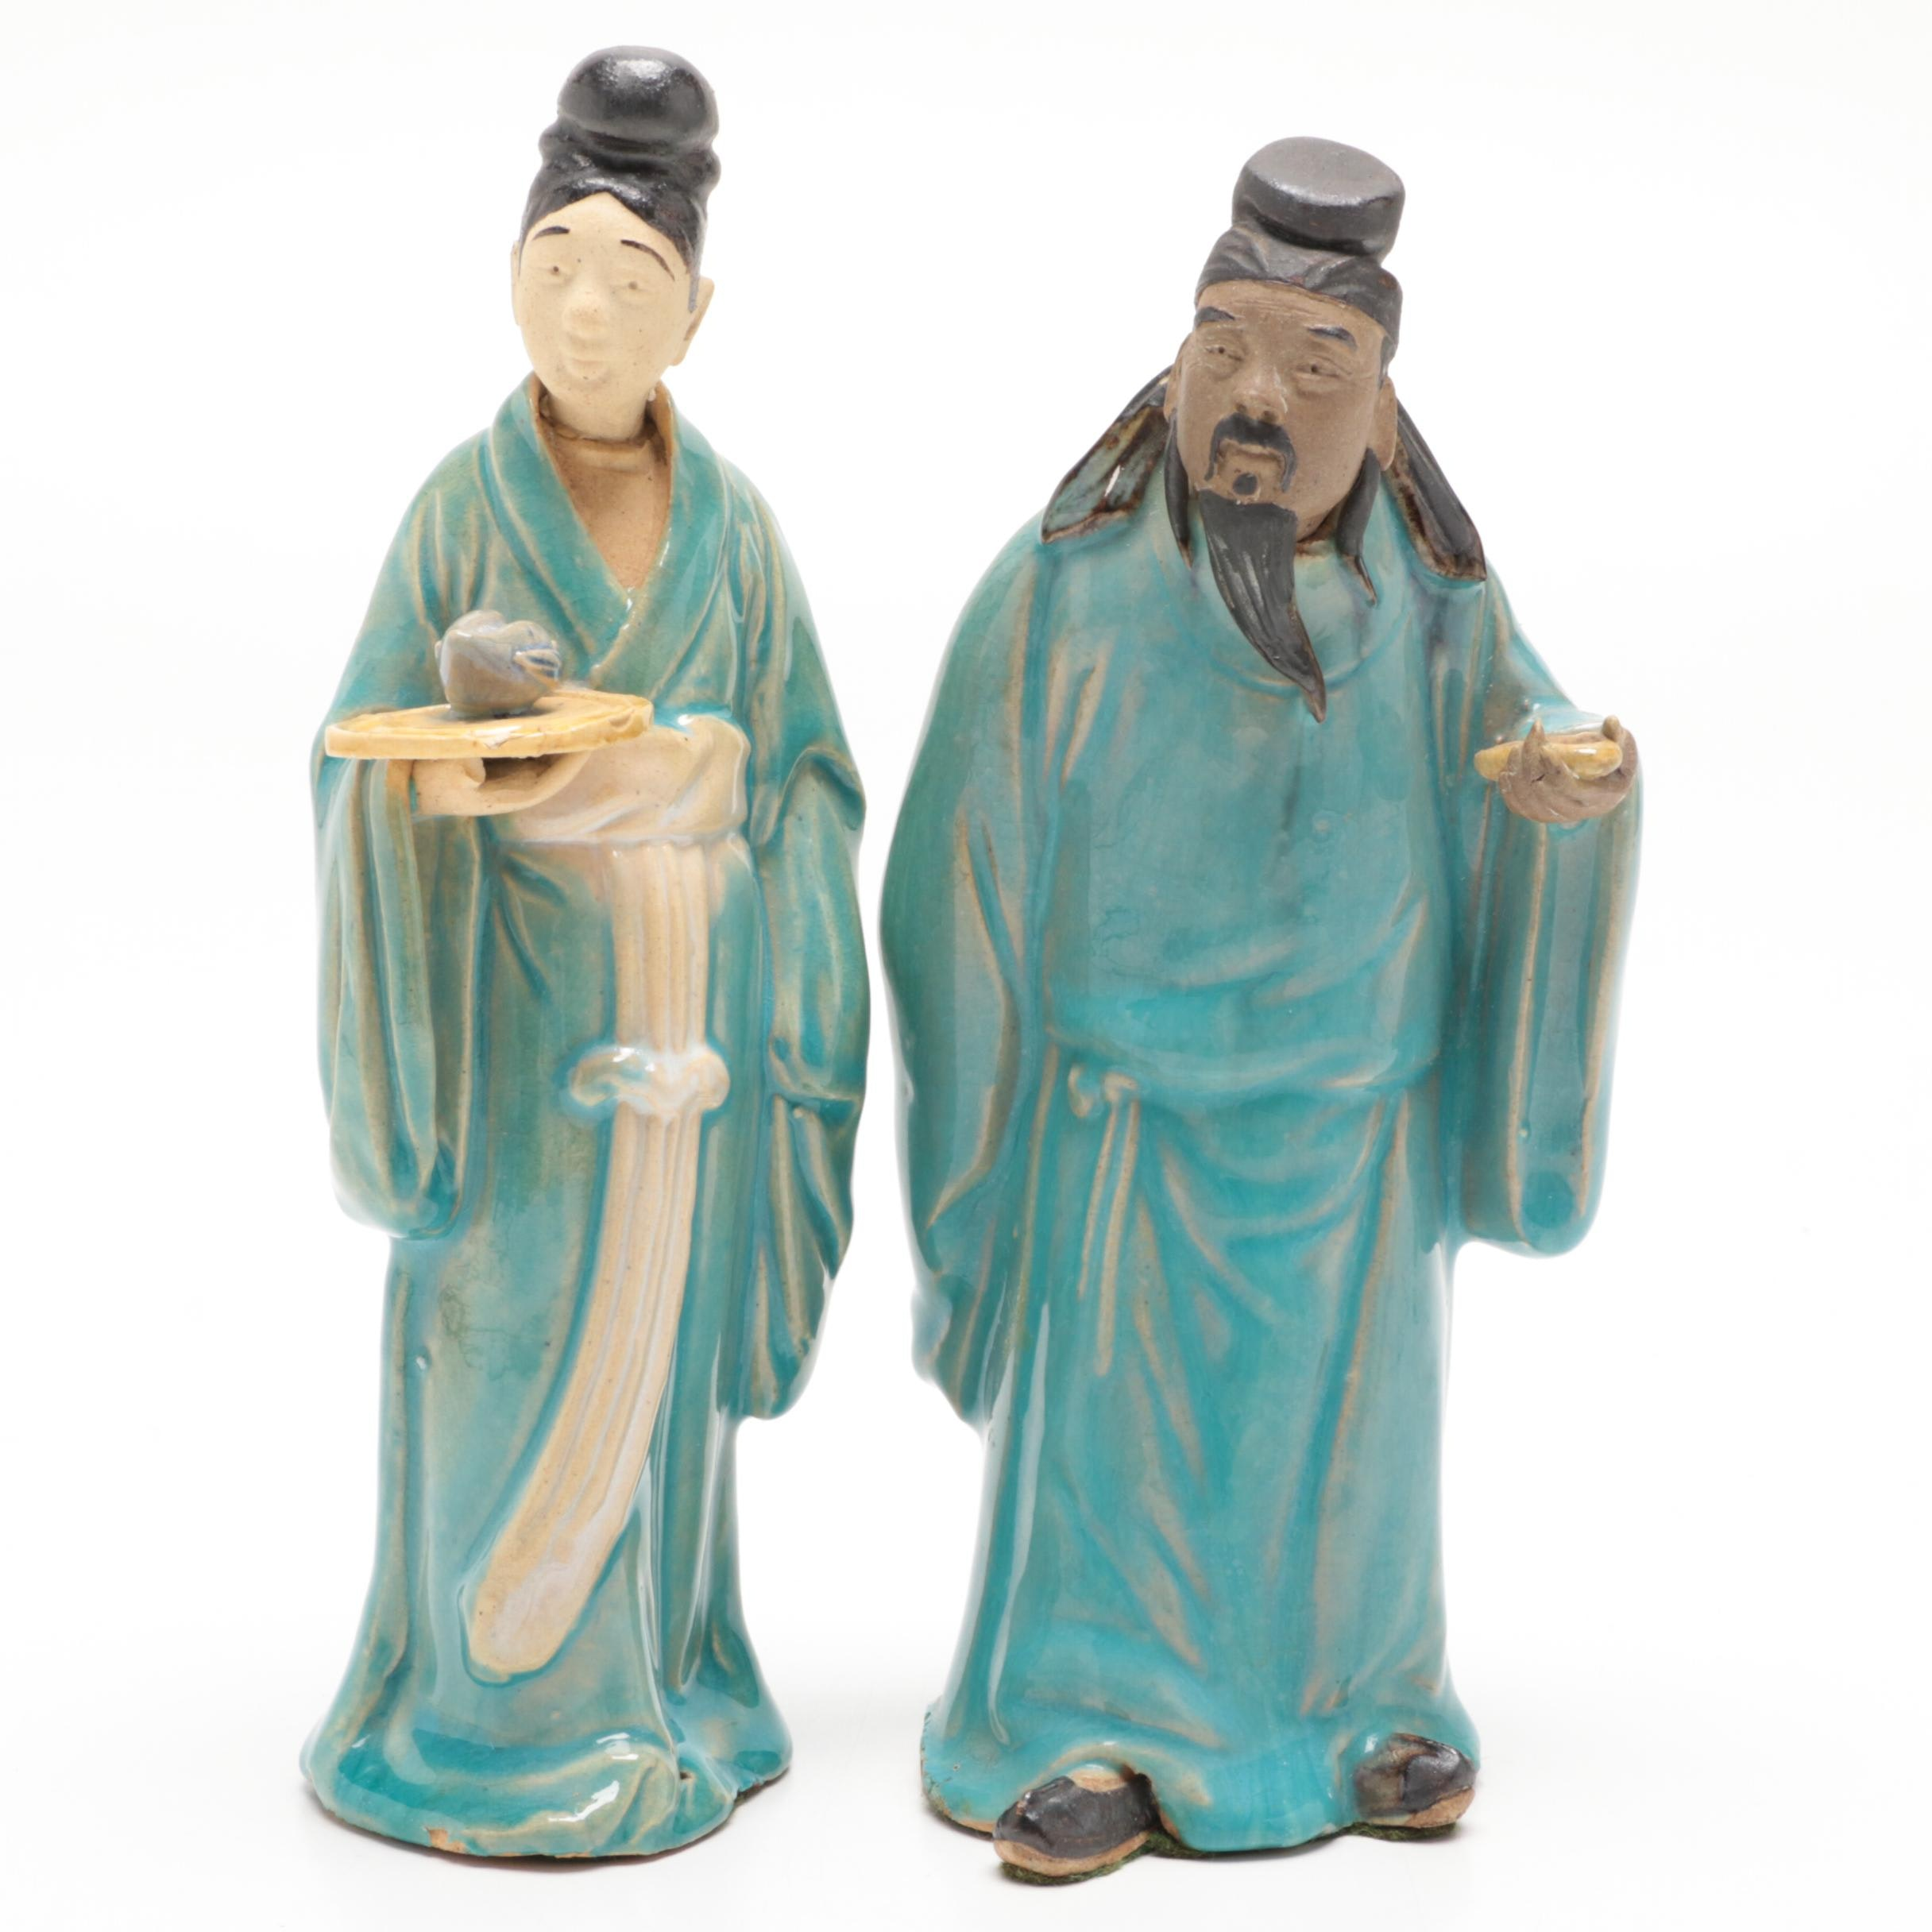 Chinese Shiwan Style Ceramic Figurines, Early 20th Century